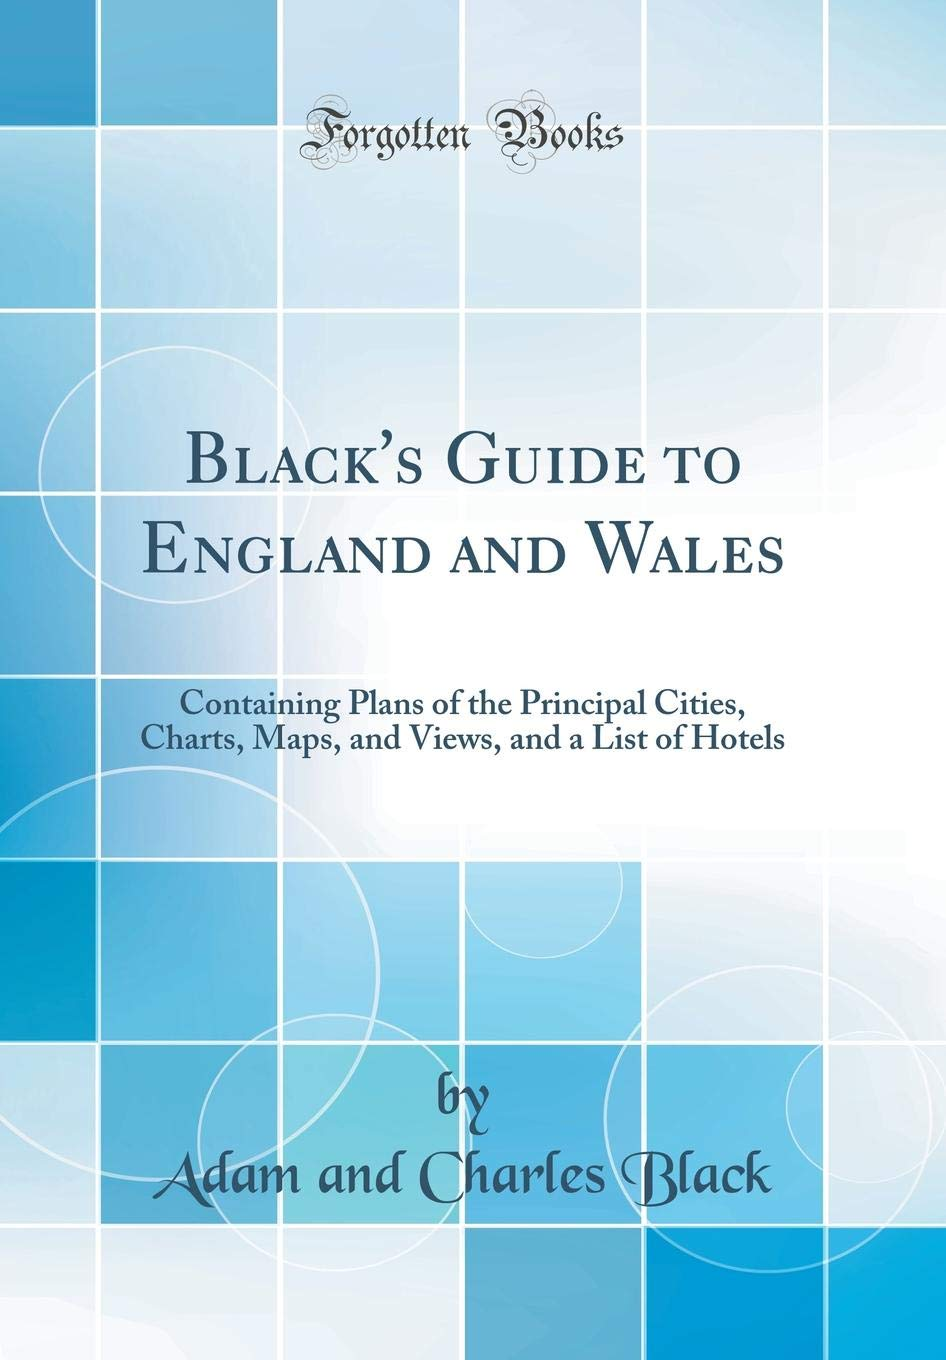 Map Of England And Wales With Cities.Black S Guide To England And Wales Containing Plans Of The